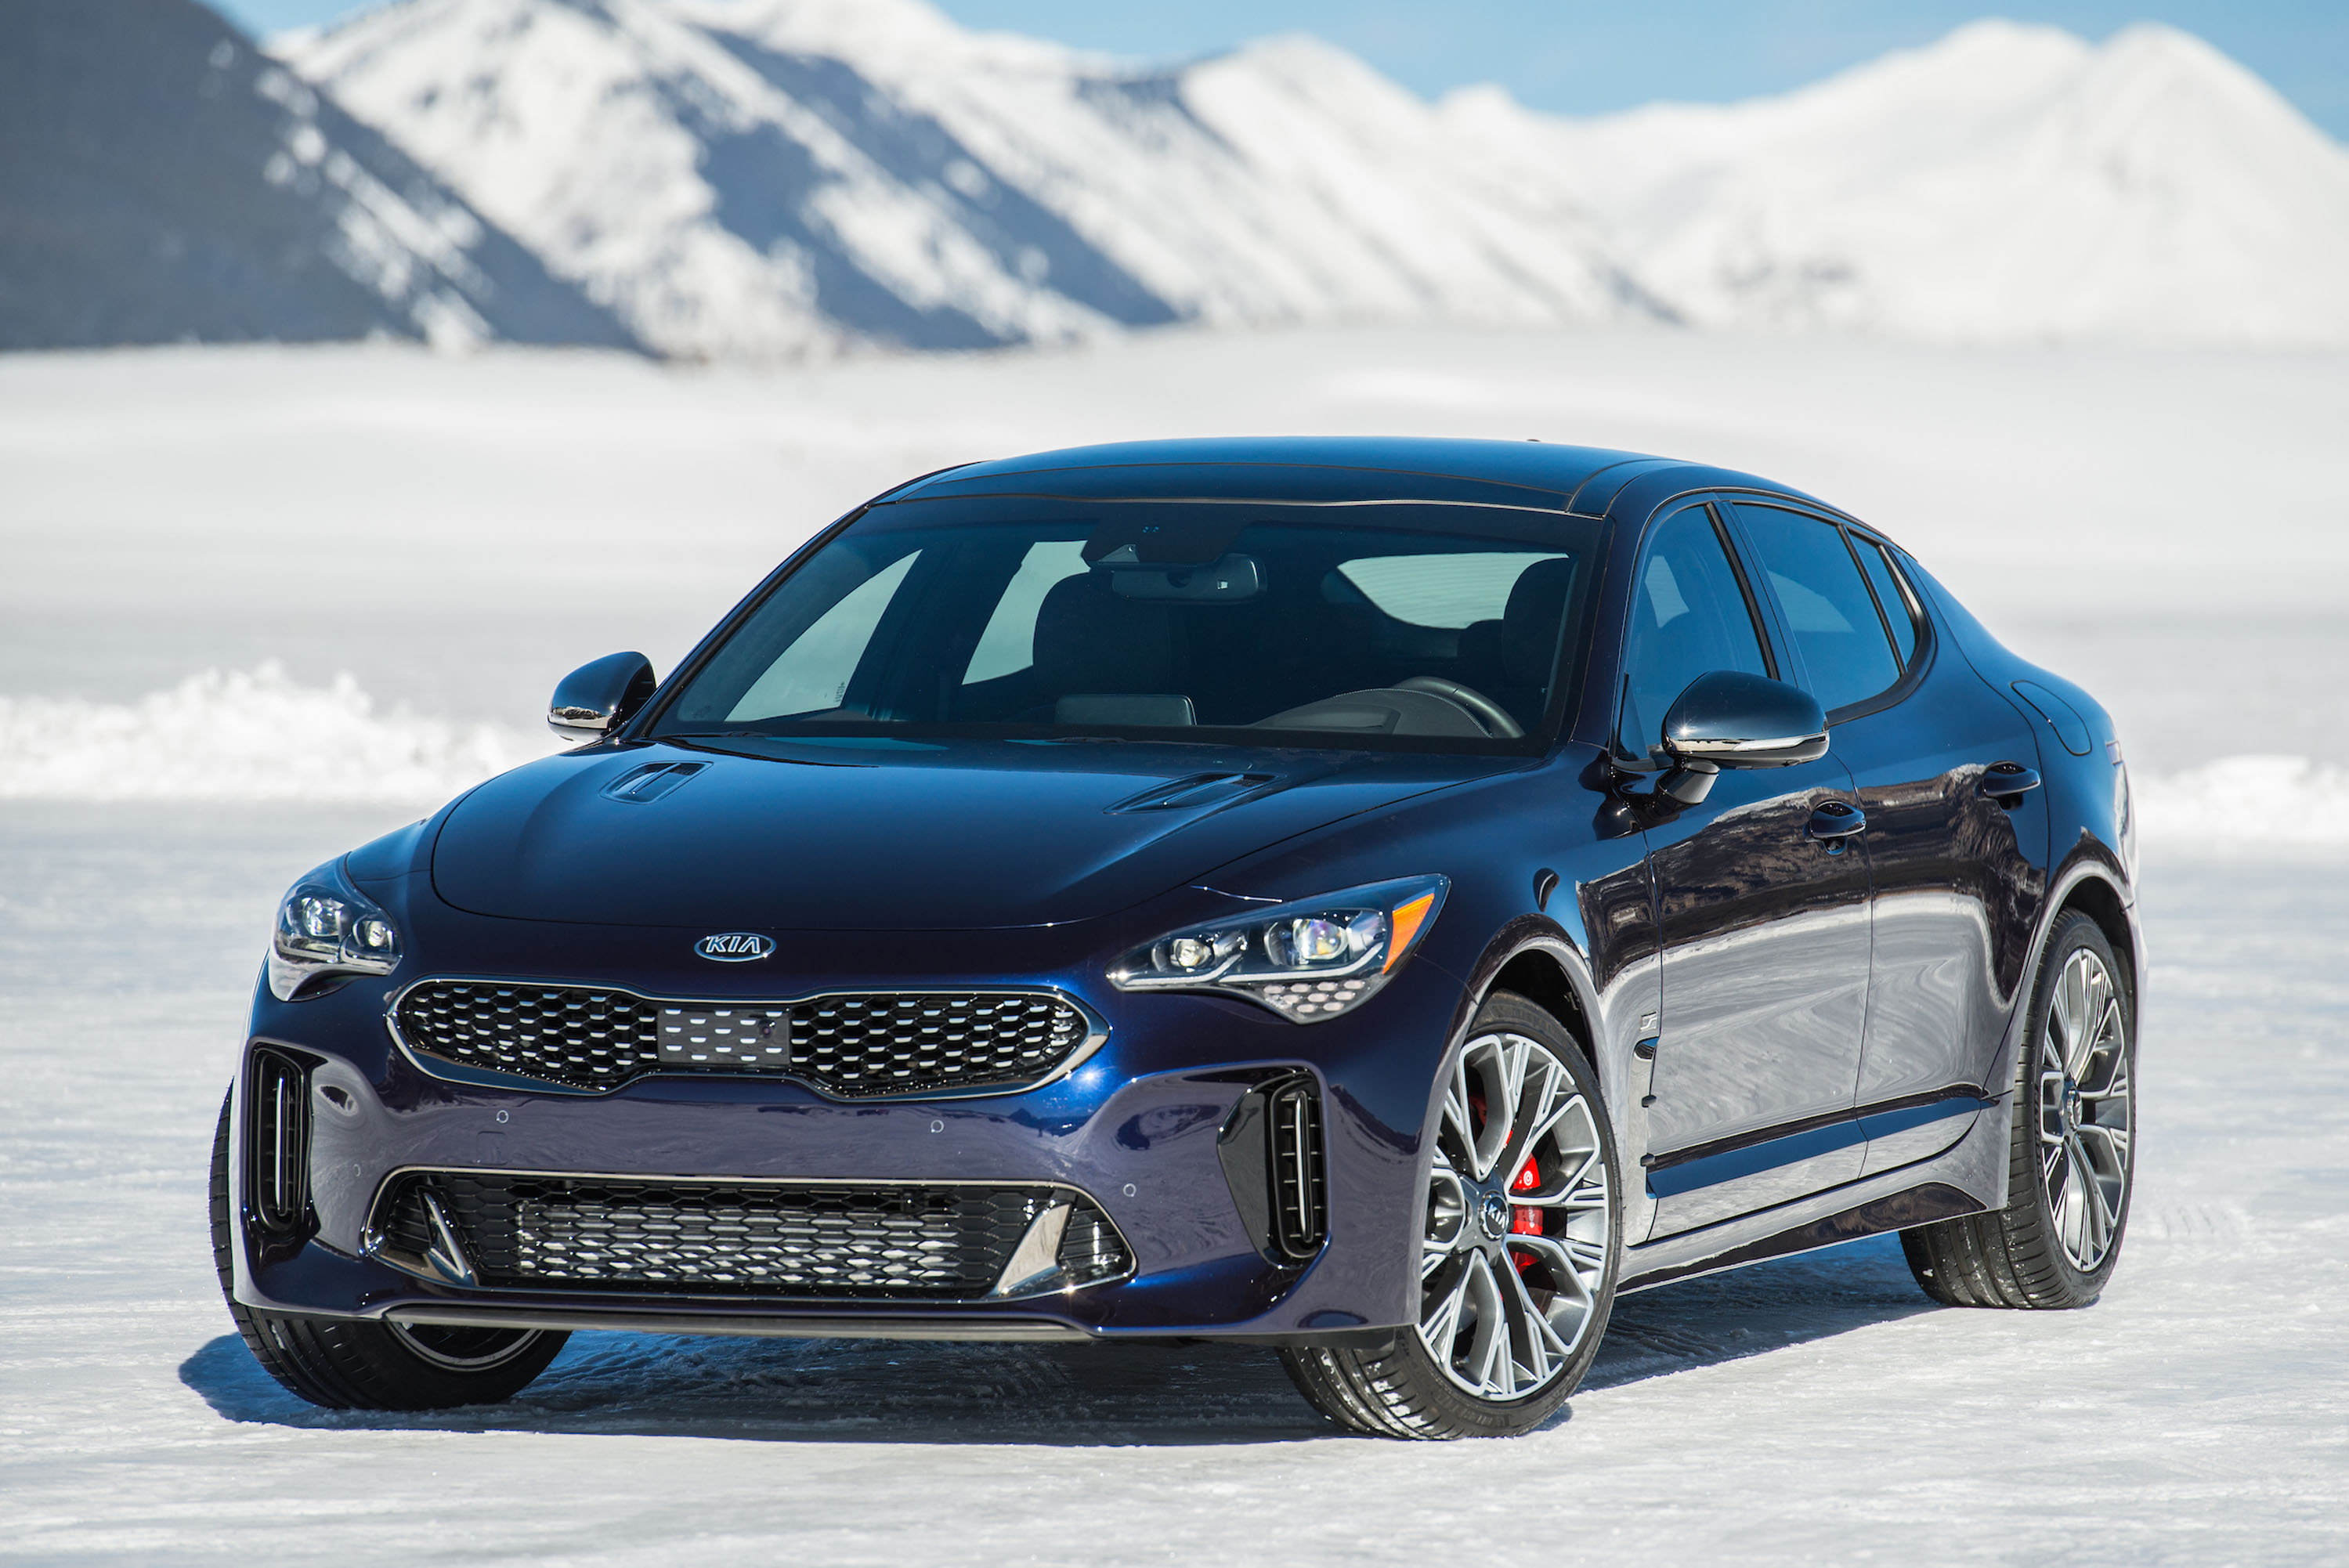 2019 Kia Stinger GT Atlantica is all dressed up and blue